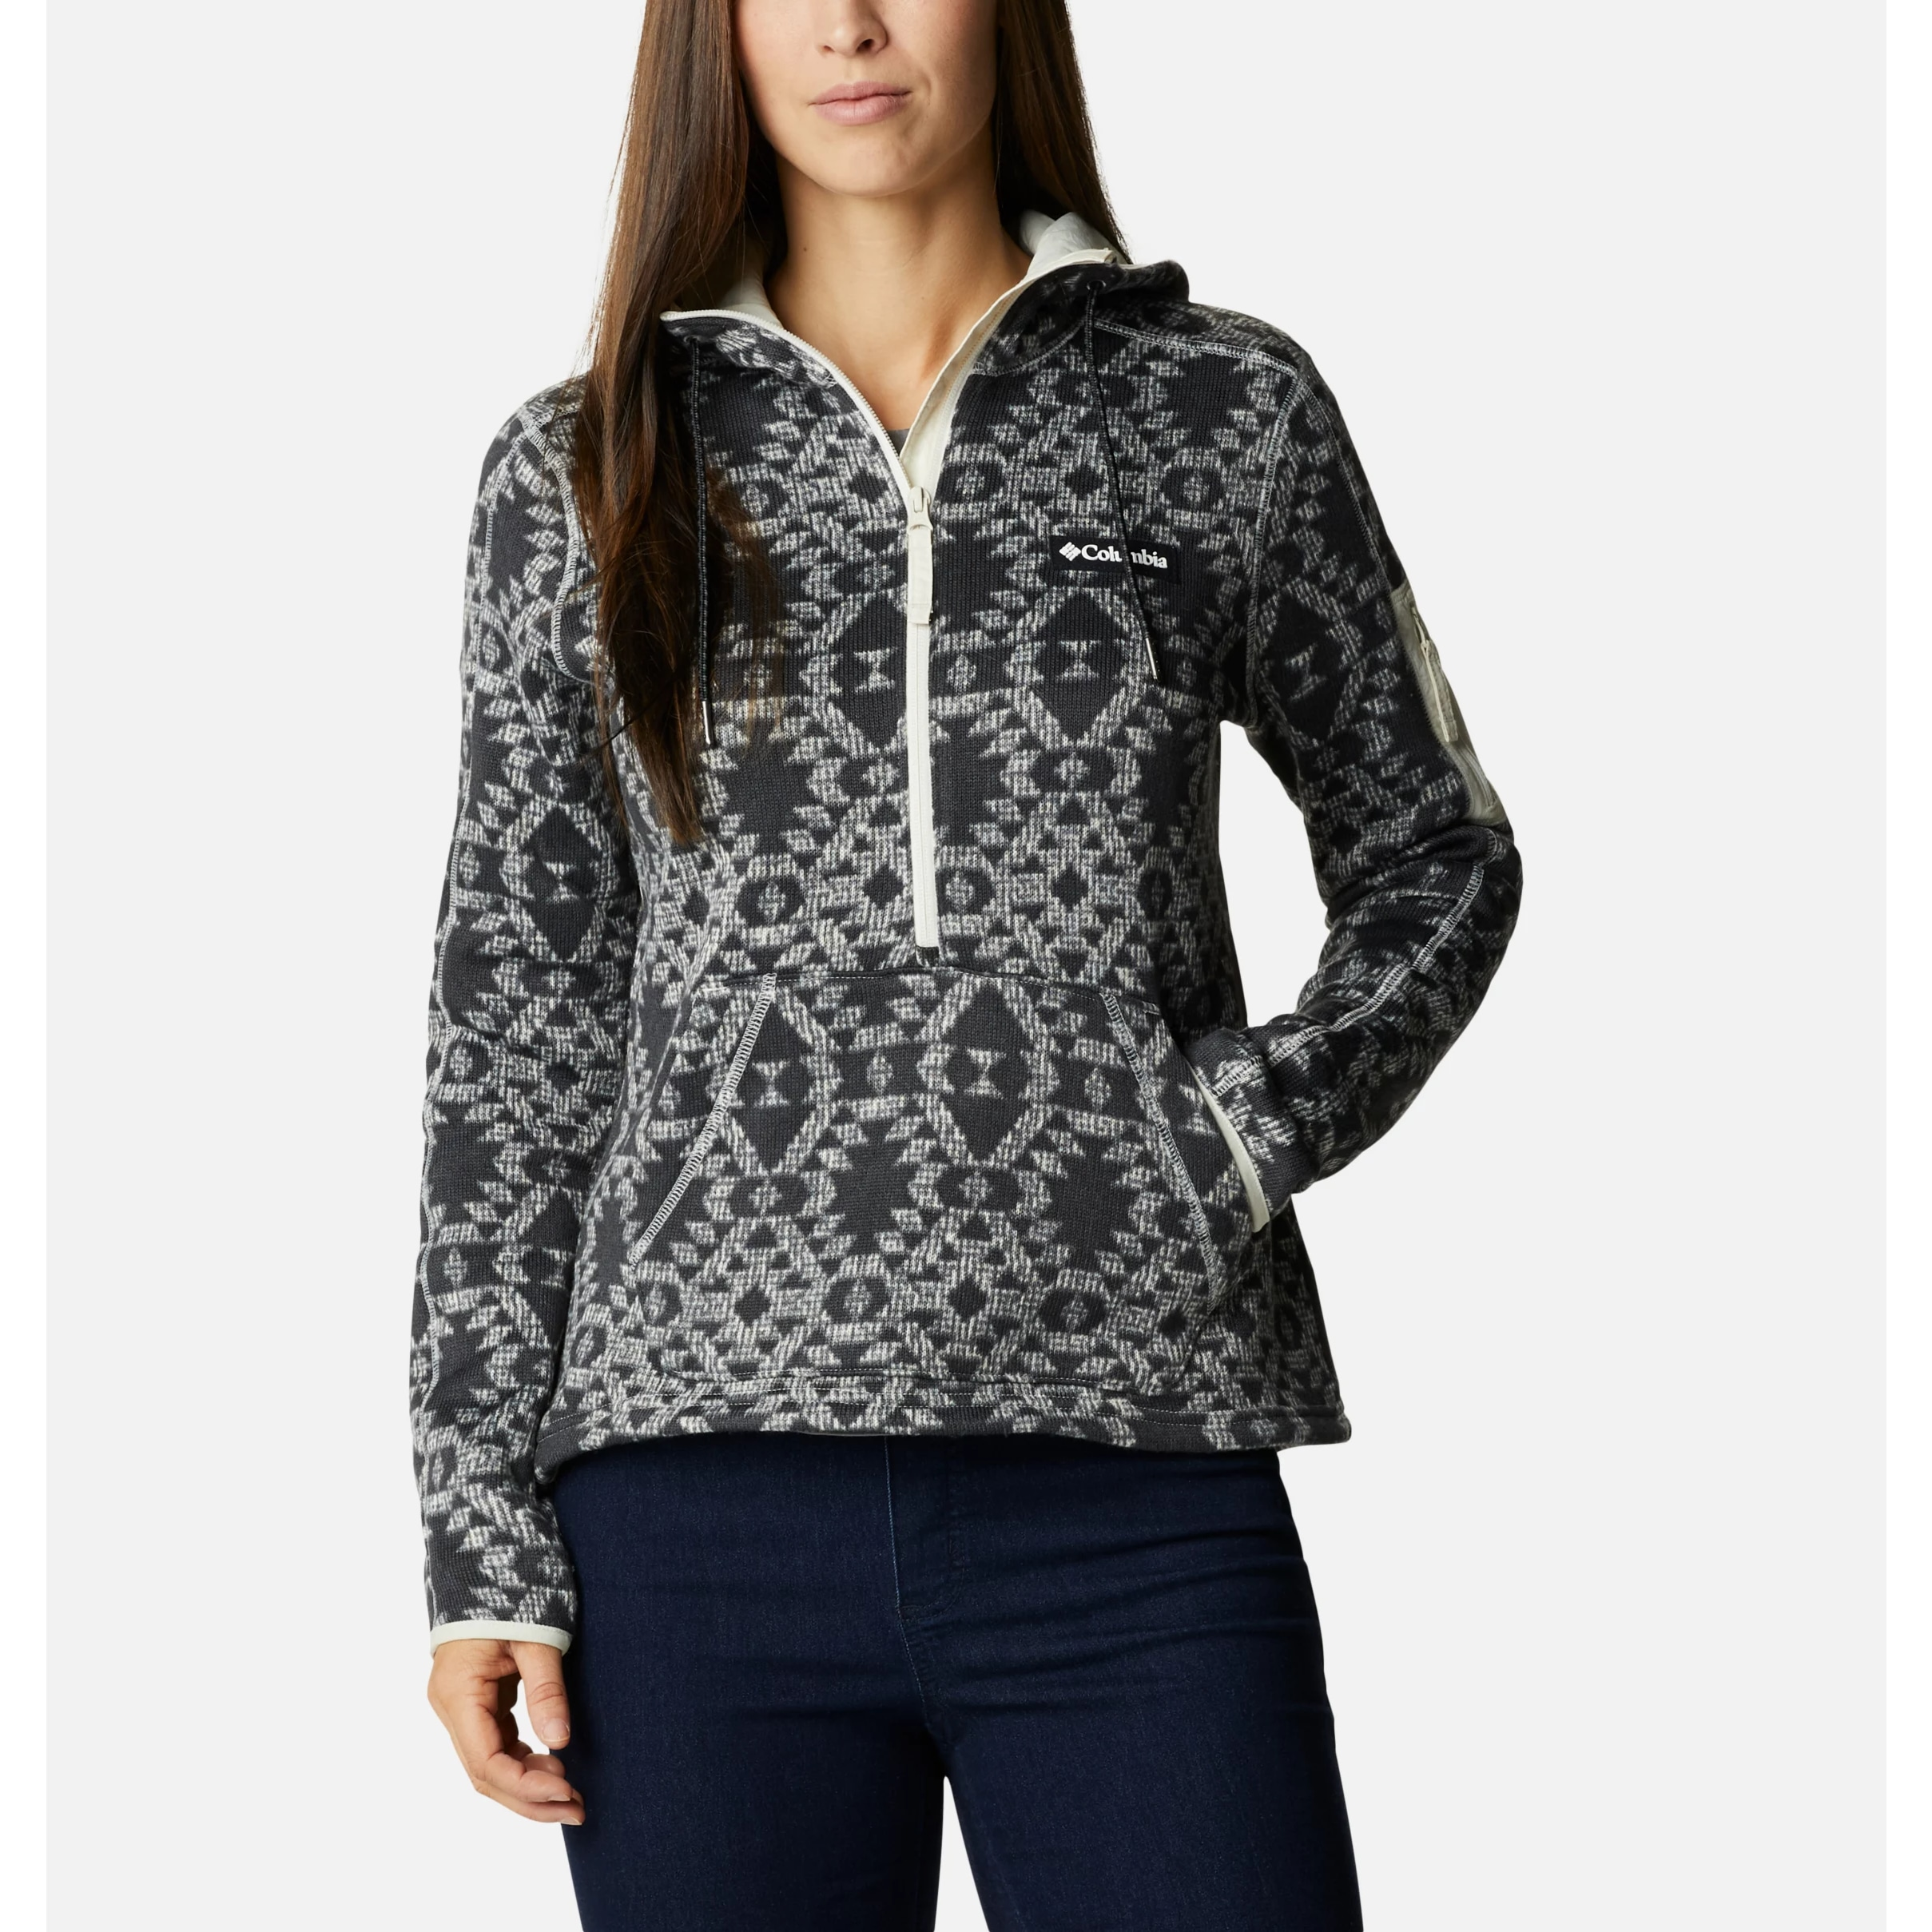 SWEATER WEATHER HOOD PULLOVER